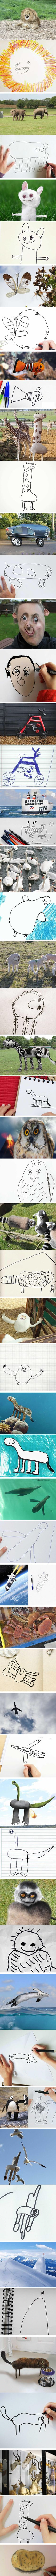 Dad Turns His 6-Year-Old Son's Drawings Into Reality And The Results Are Both Creepy And Hilarious (By Dom)